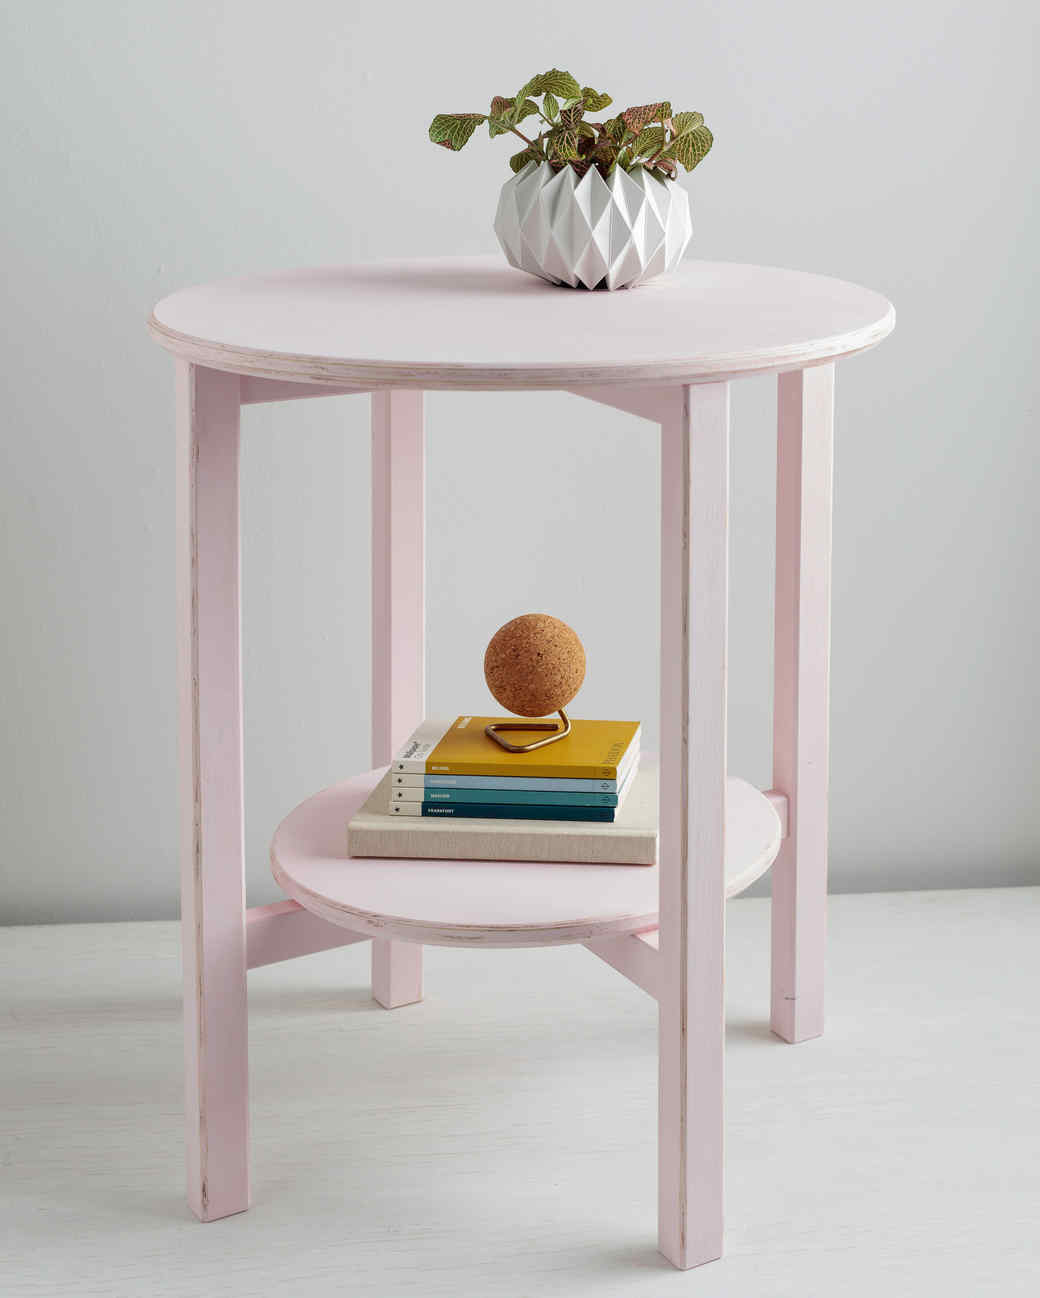 easy elegant ways paint any piece furniture martha stewart sidetable vert better homes and gardens accent table multiple colors ikea small glass antique armoire solid wood end